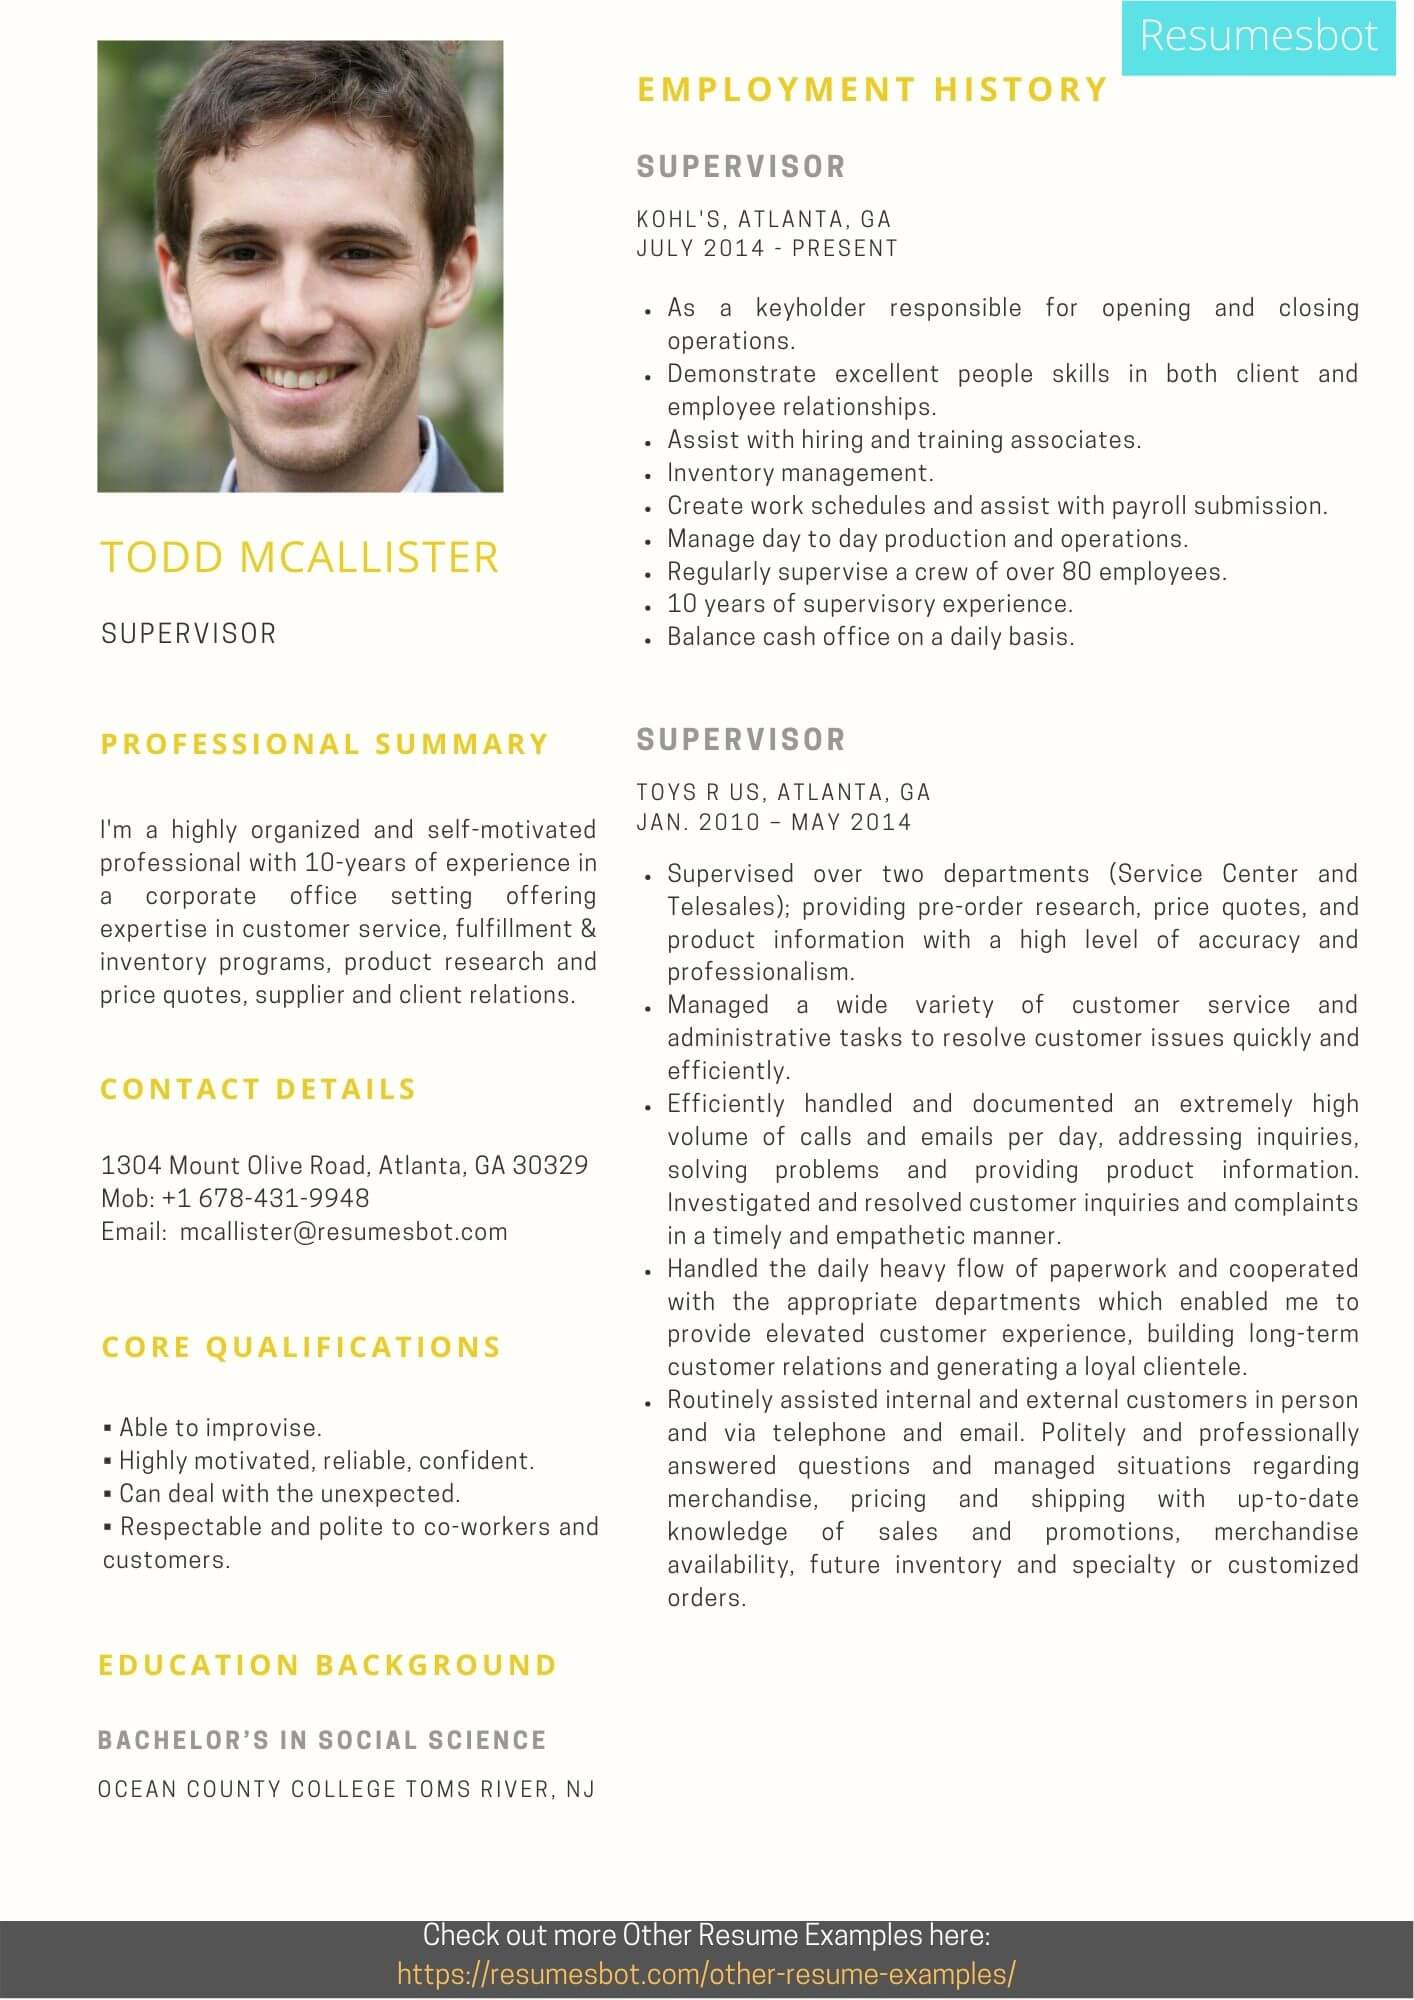 supervisor resume samples and tips pdf resumes bot self motivated sample example Resume Self Motivated Resume Sample